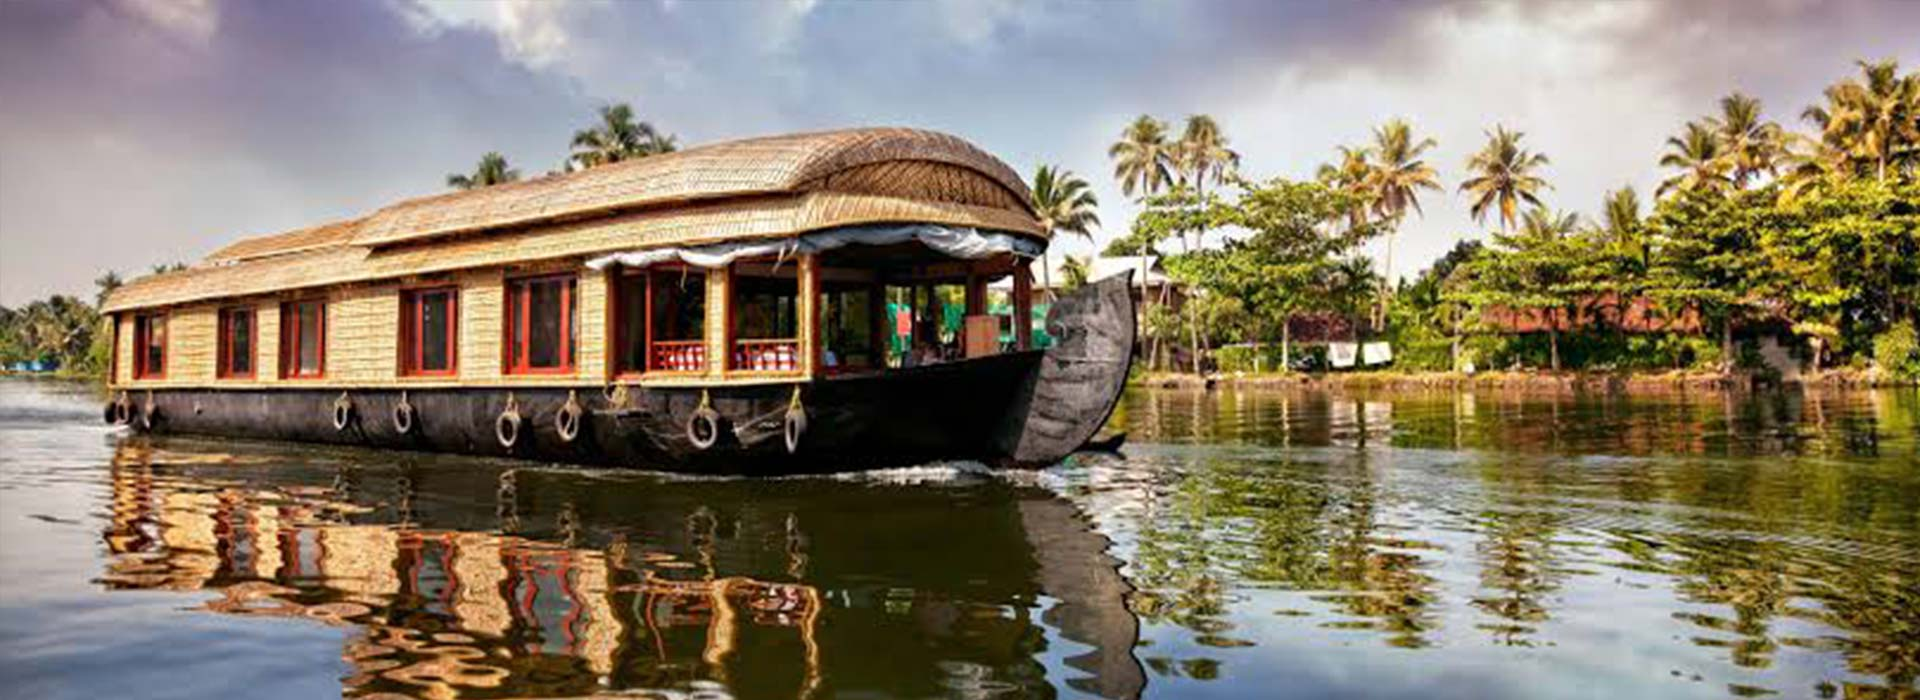 KERALA'S JOURNEY THROUGH BACK WATERS By HOUSEBOAT